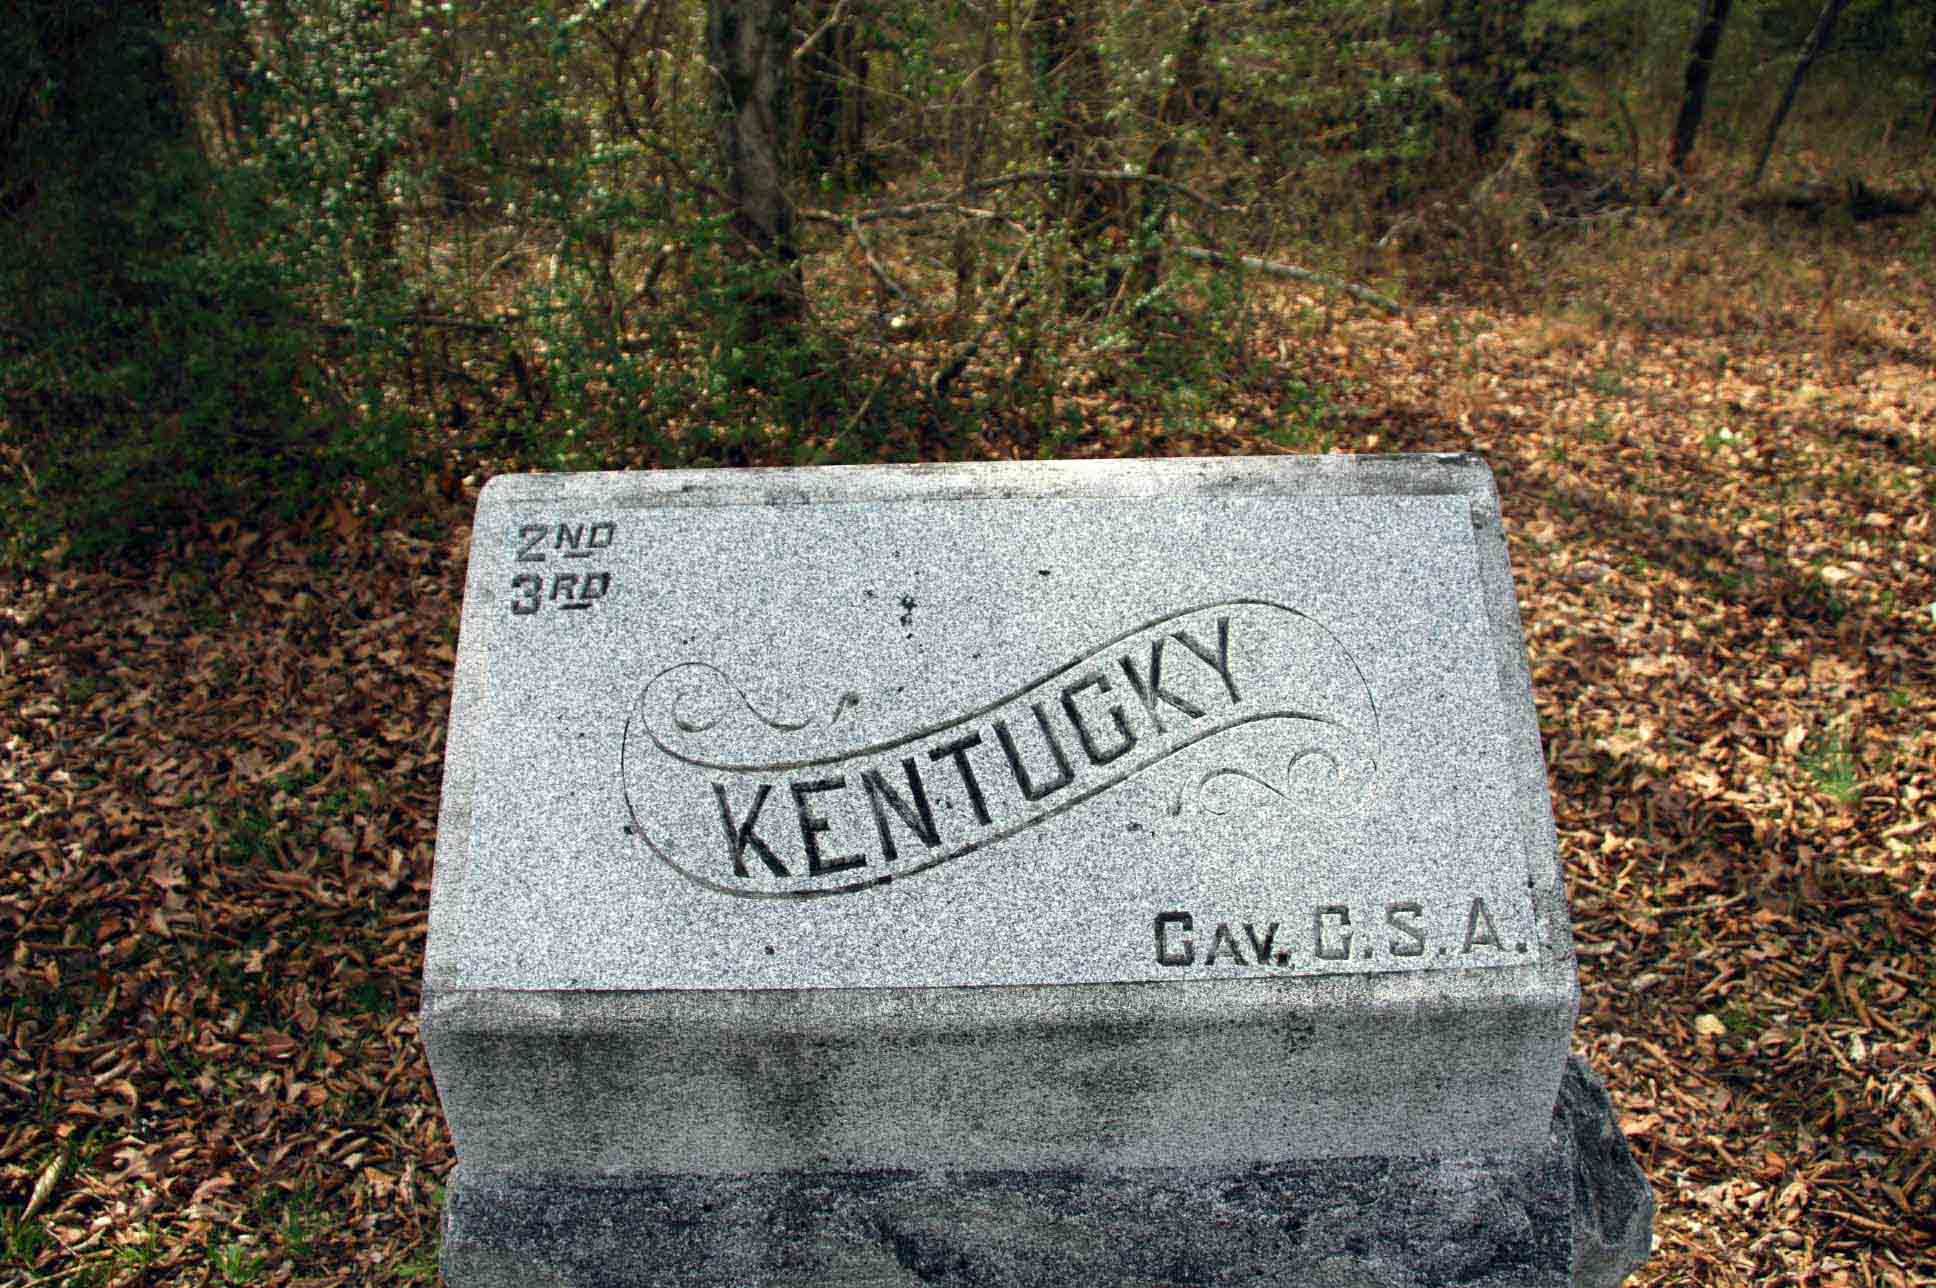 2nd & 3rd Kentucky Cavalry (CSA) Marker, click photo to enlarge.